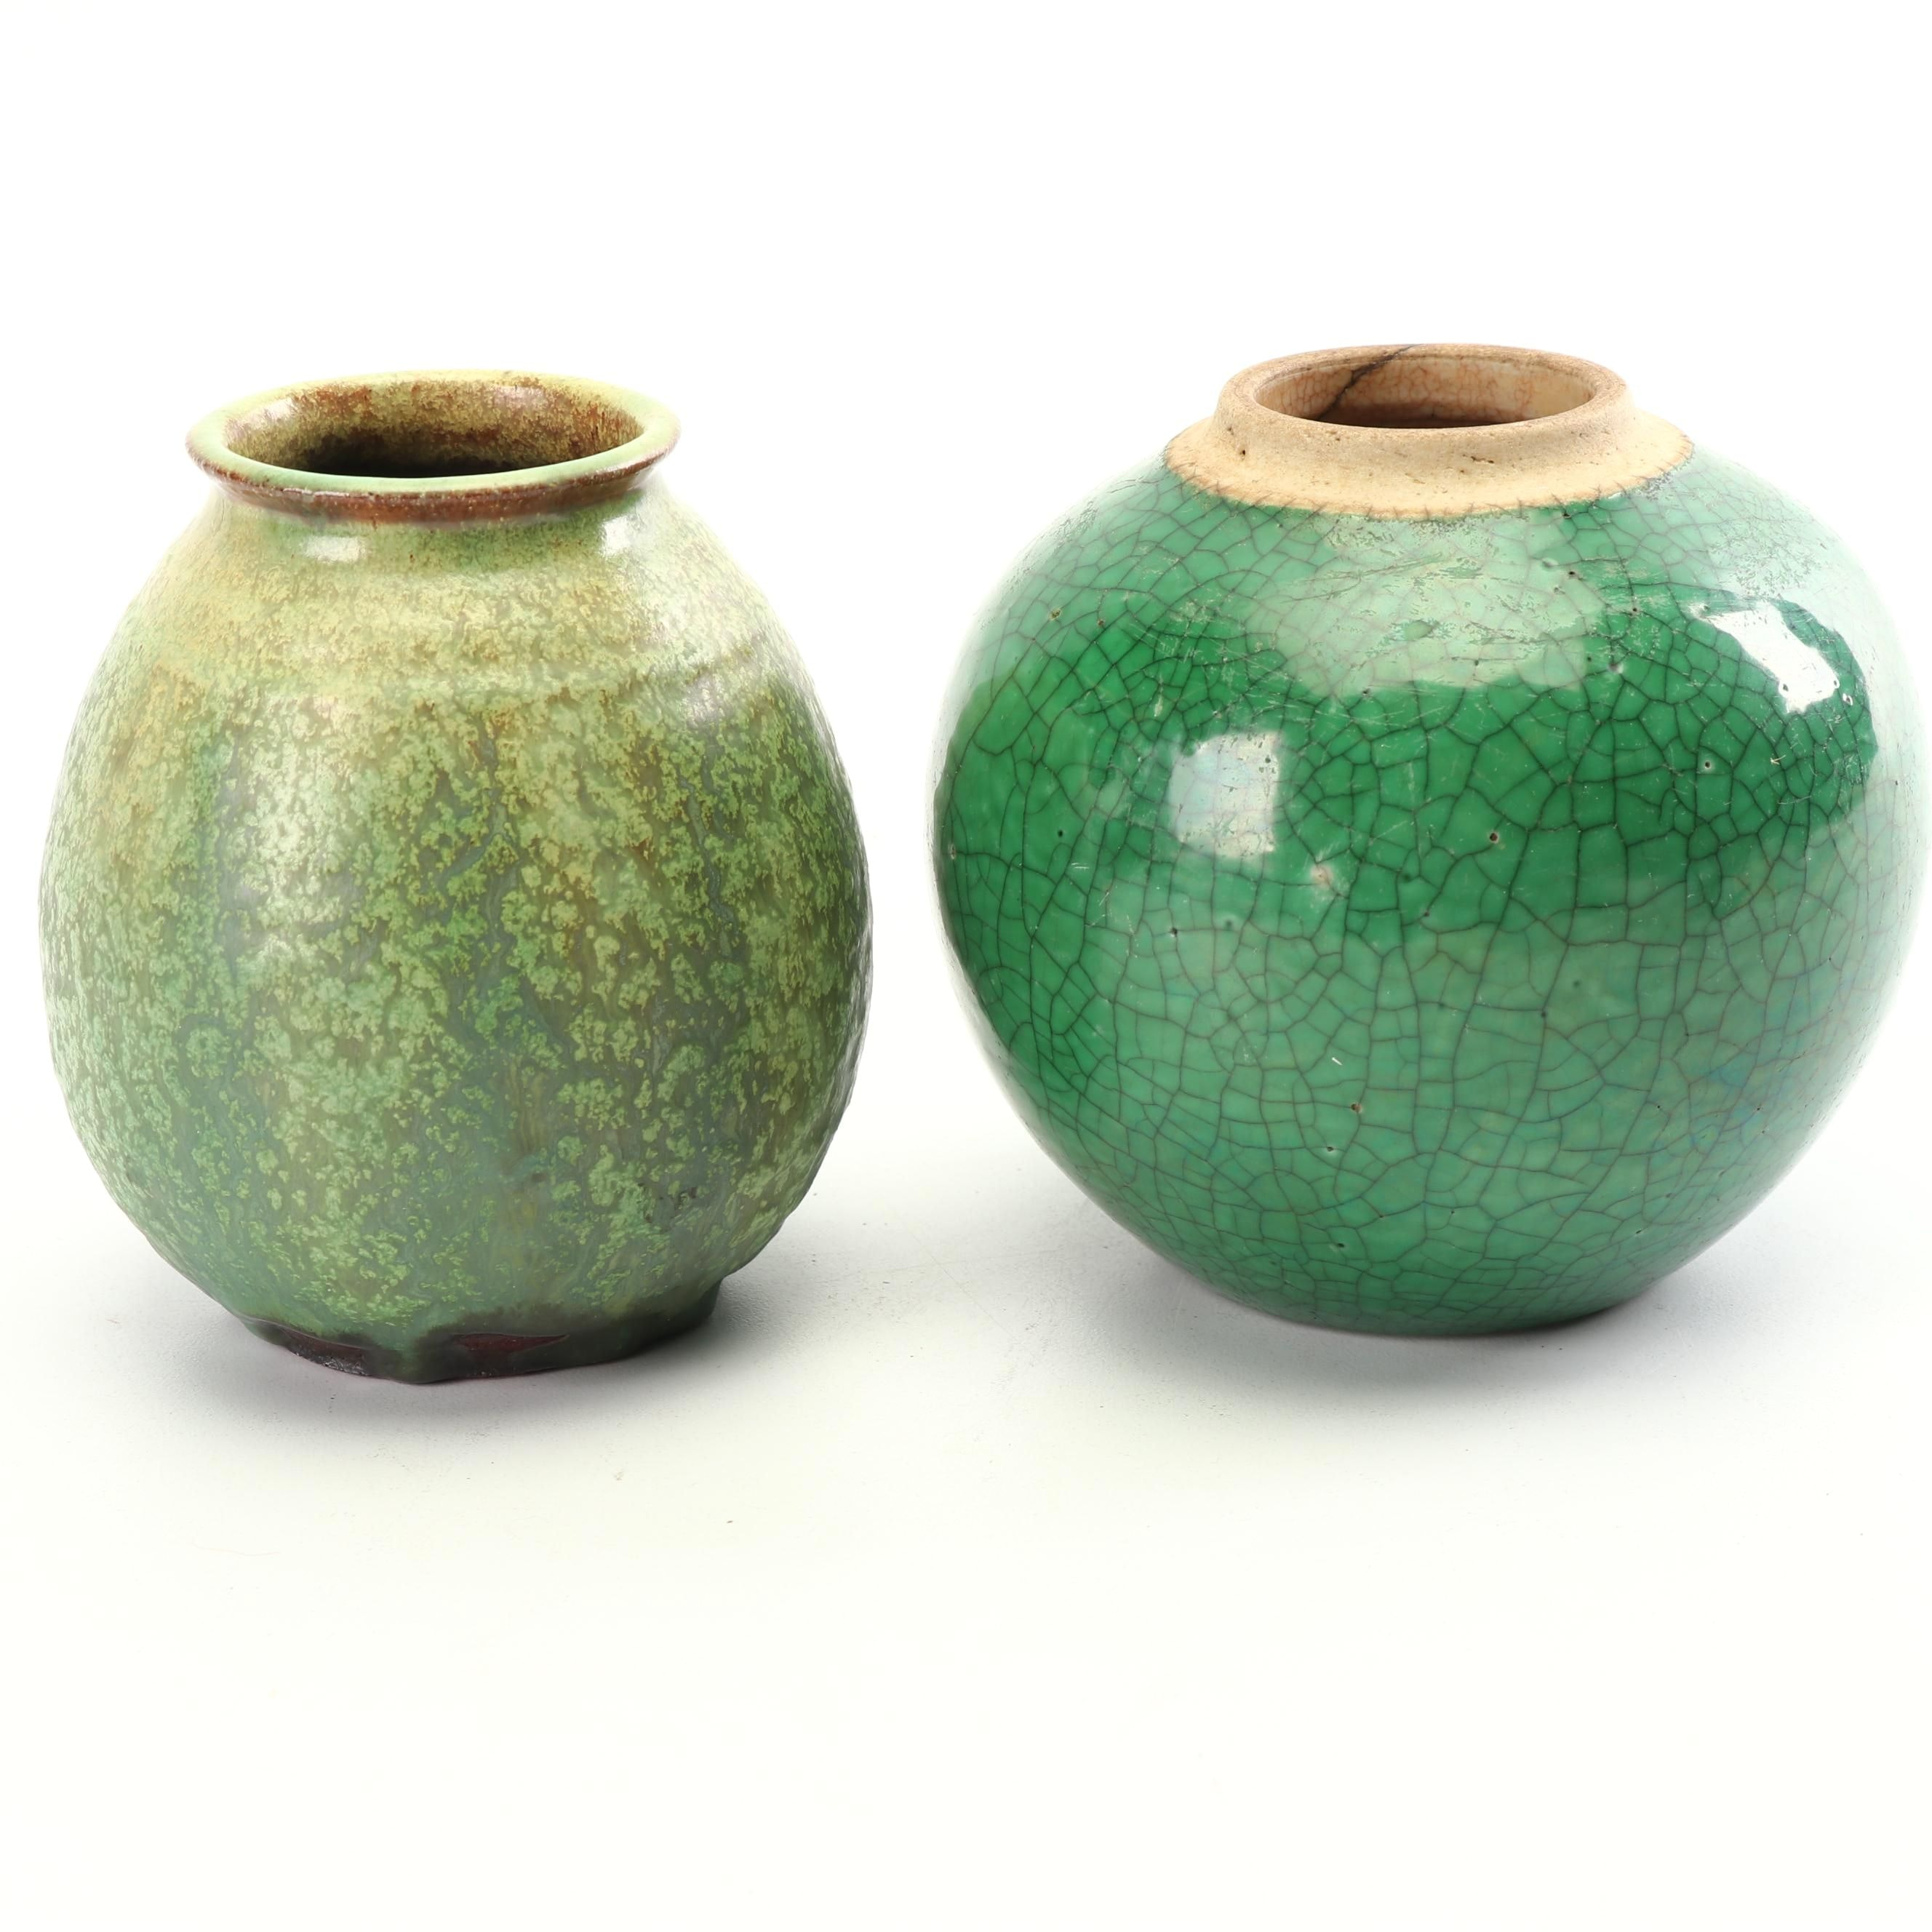 Vintage Venezuelan and Chinese Crackled Style Earthenware Vessels